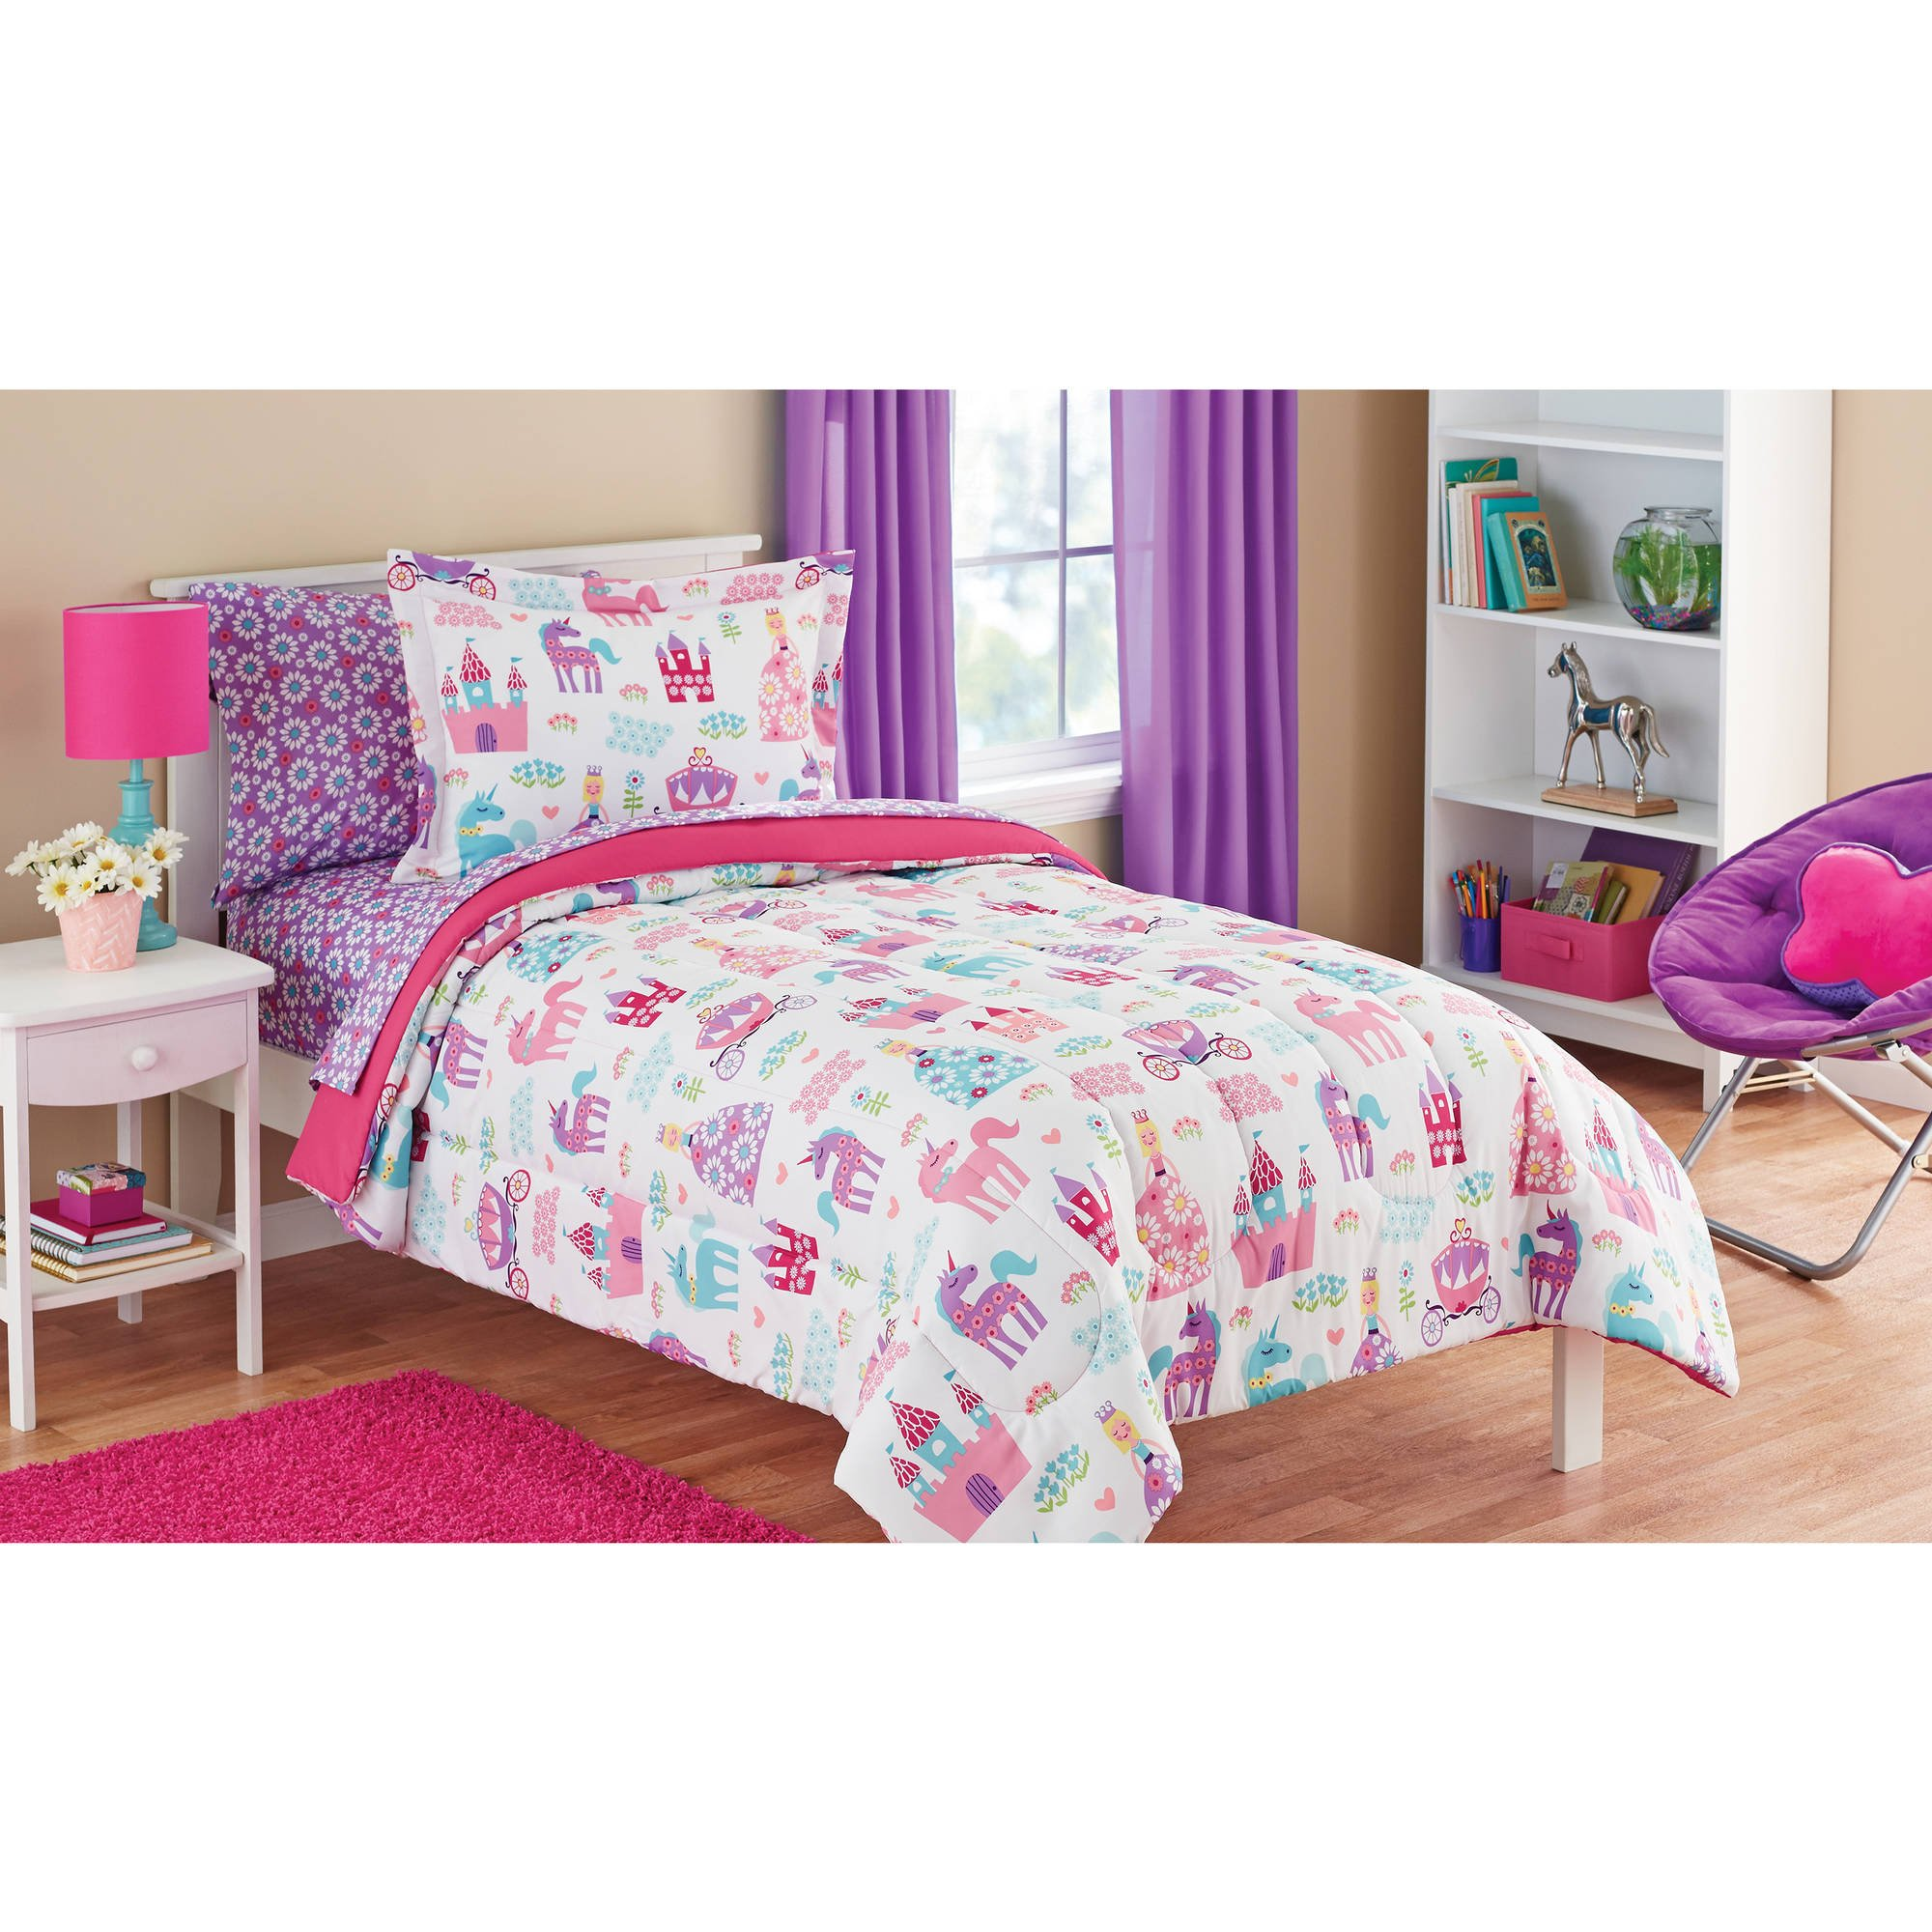 Mainstays Kids Pretty Princess, Floral, Castle, Unicorns and Hearts Reversible Bedding Twin Comforter for Girls (5 Piece in a Bag)